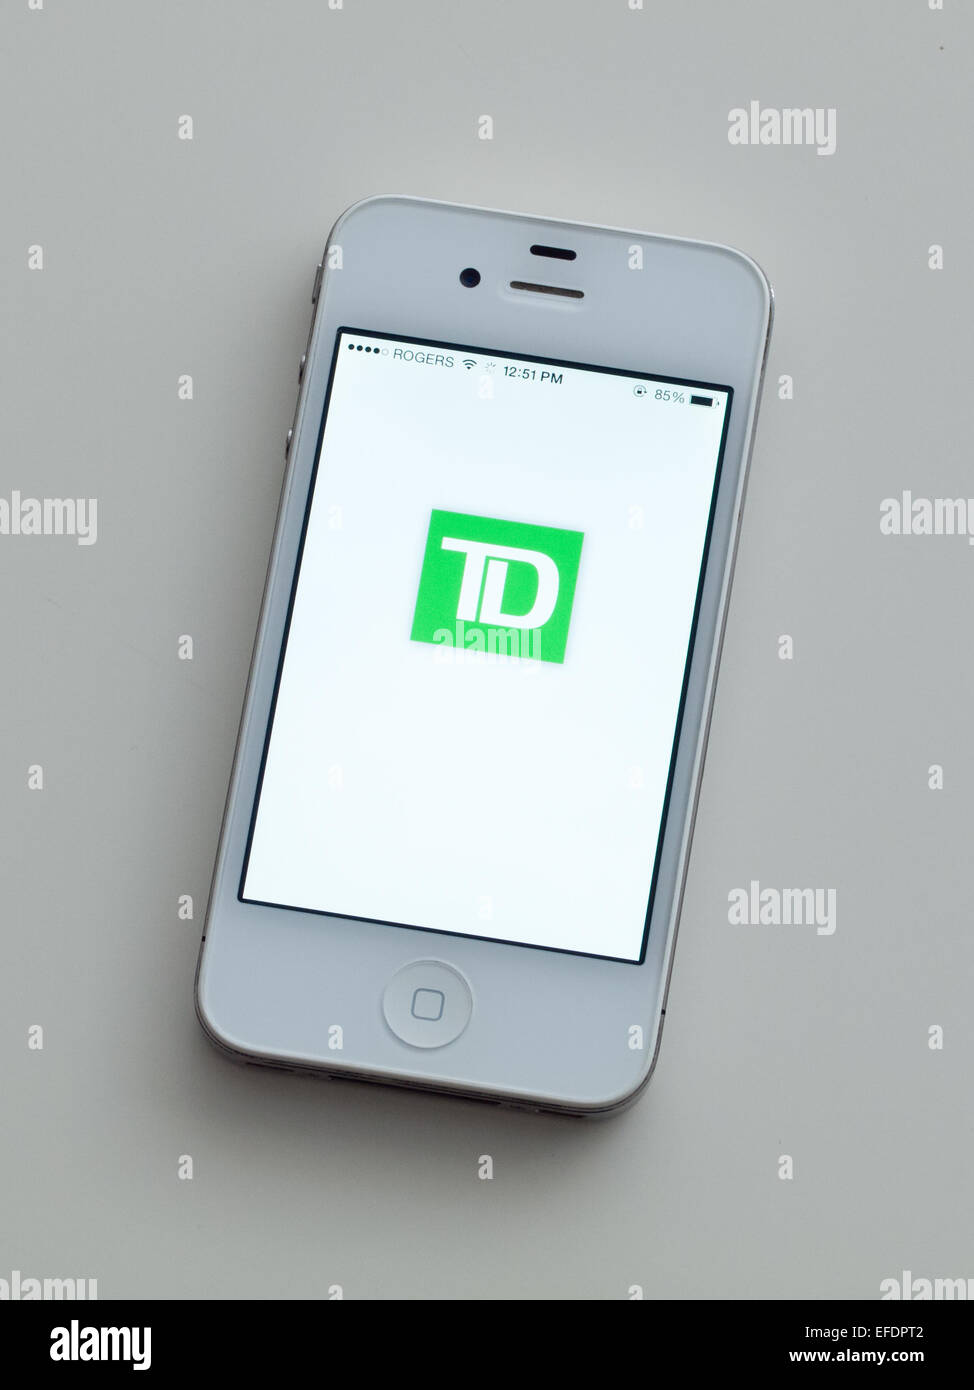 A view of the logo and homescreen of the TD Bank mobile